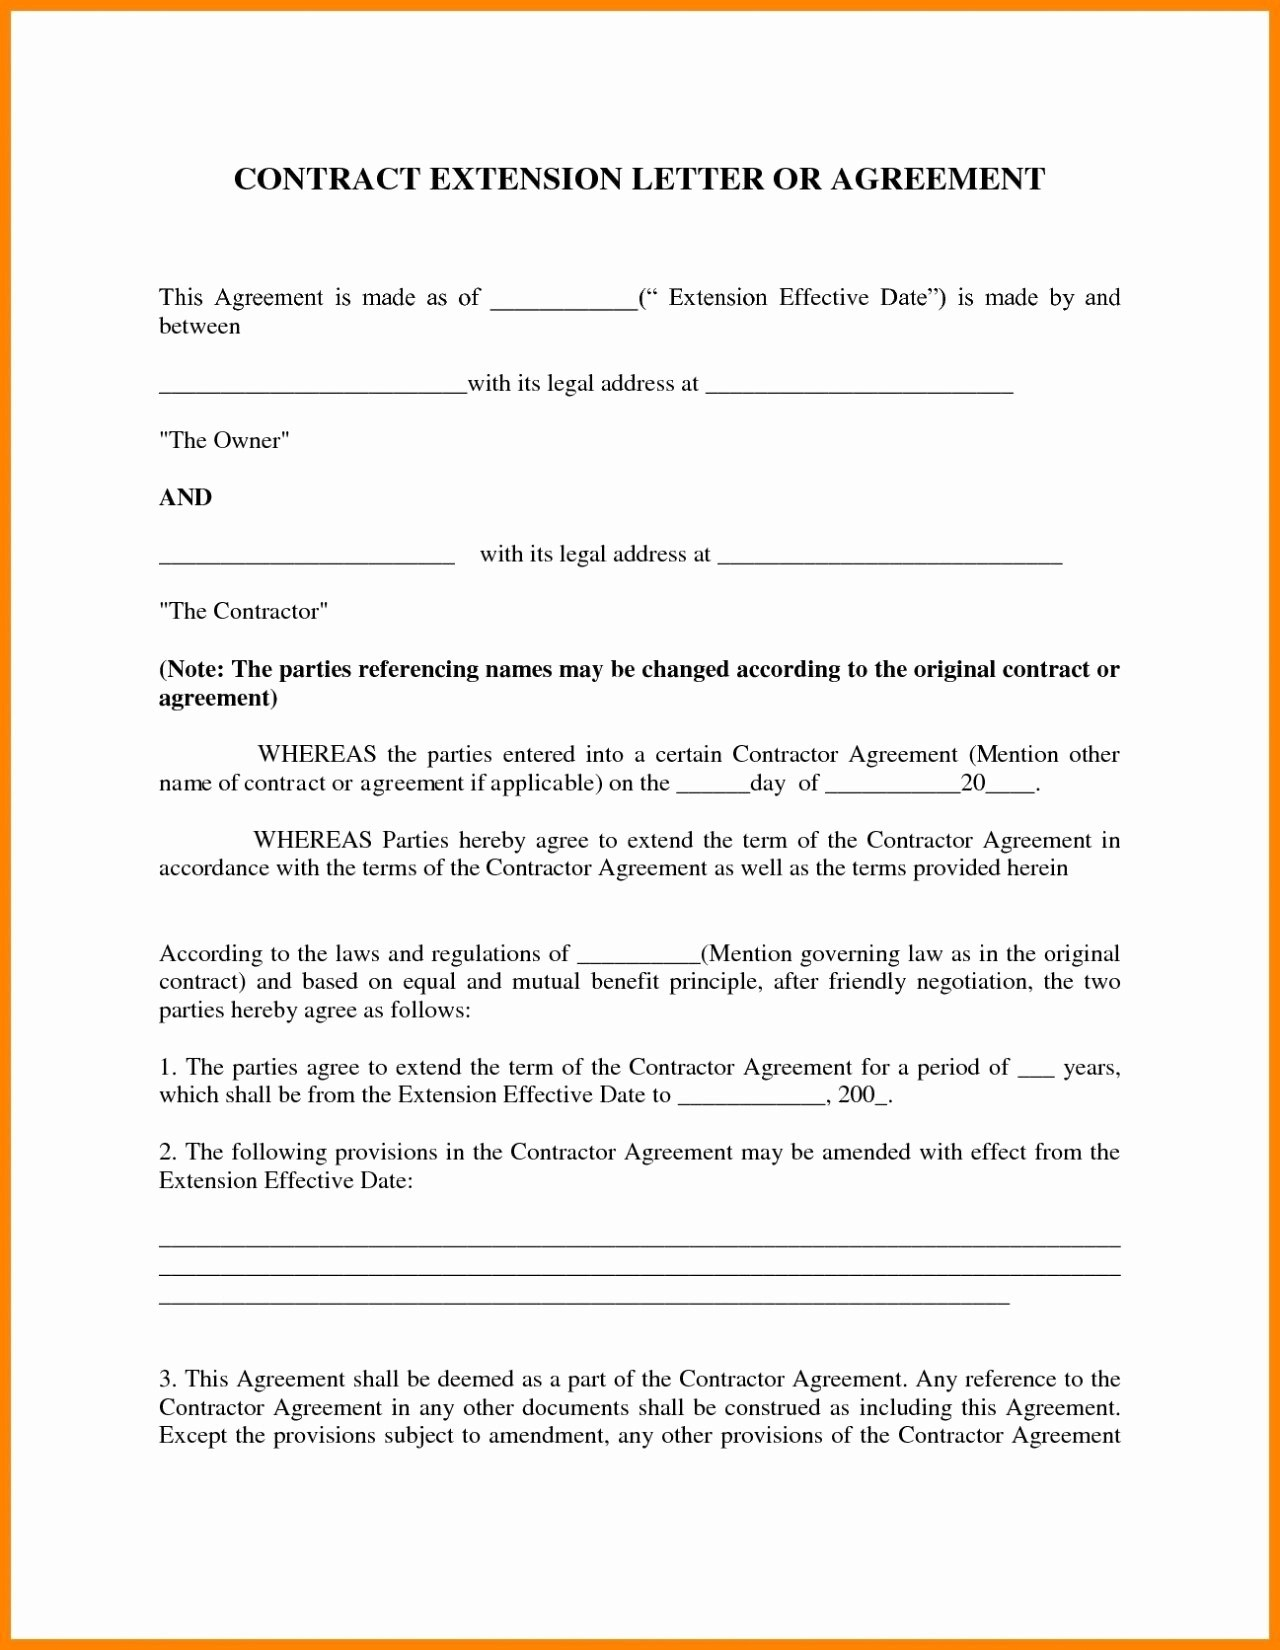 Agreement Letter Between Two People : agreement, letter, between, people, Contract, Agreement, Letter, Examples